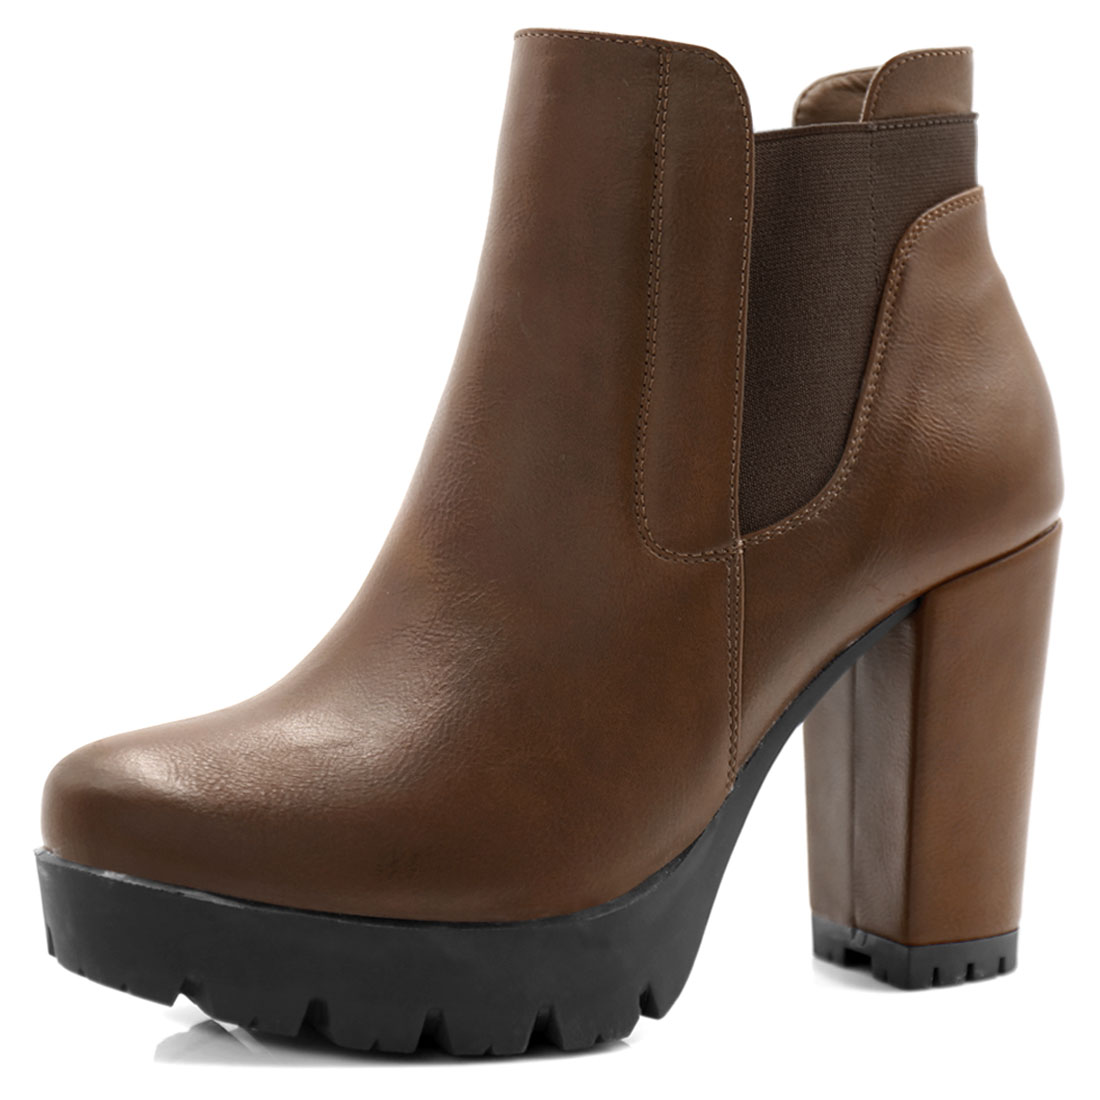 Women Chunky High Heel Platform Zipper Chelsea Boots Brown US 9